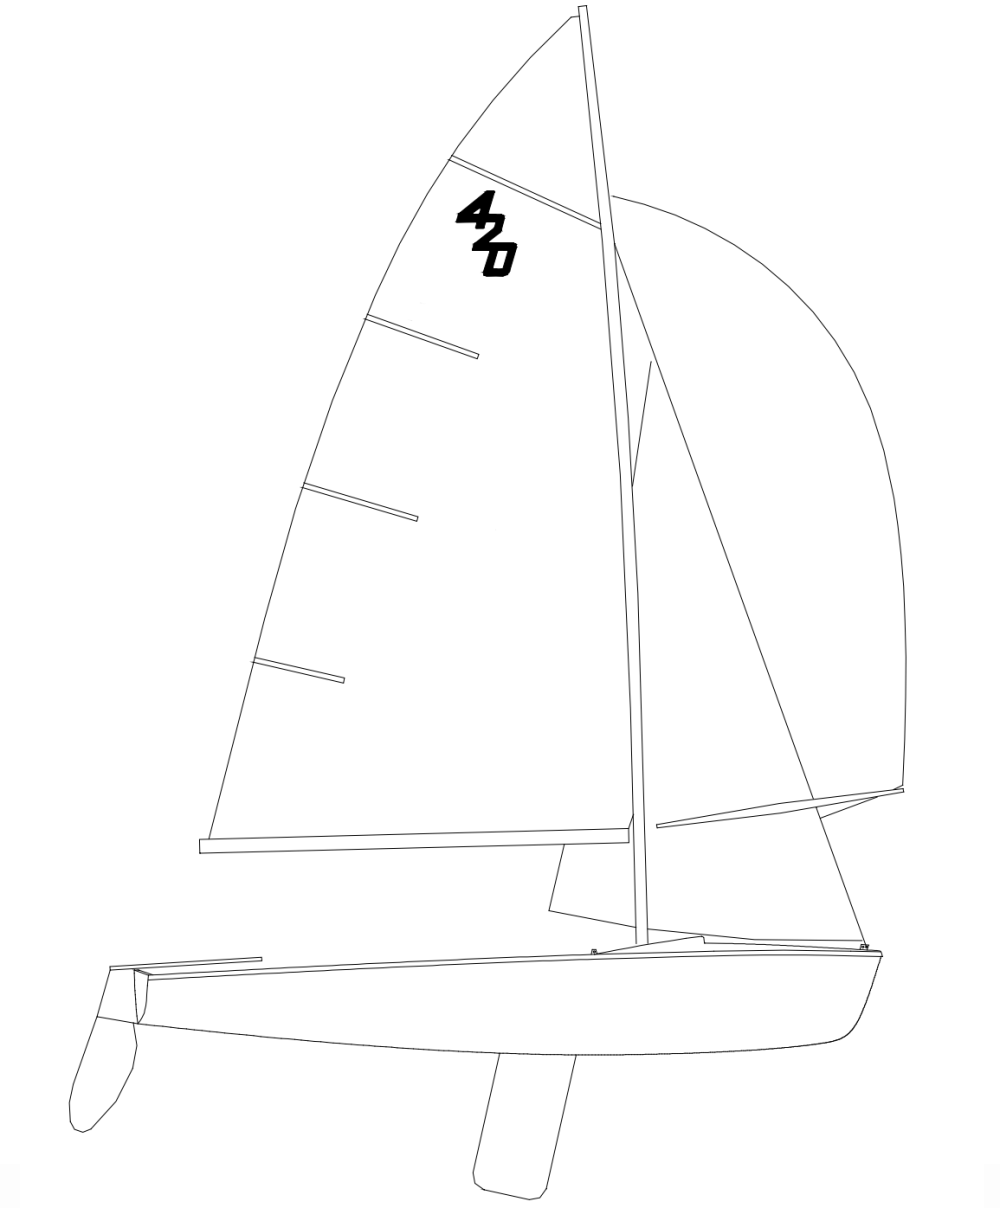 medium resolution of 420 class sailboat specifications